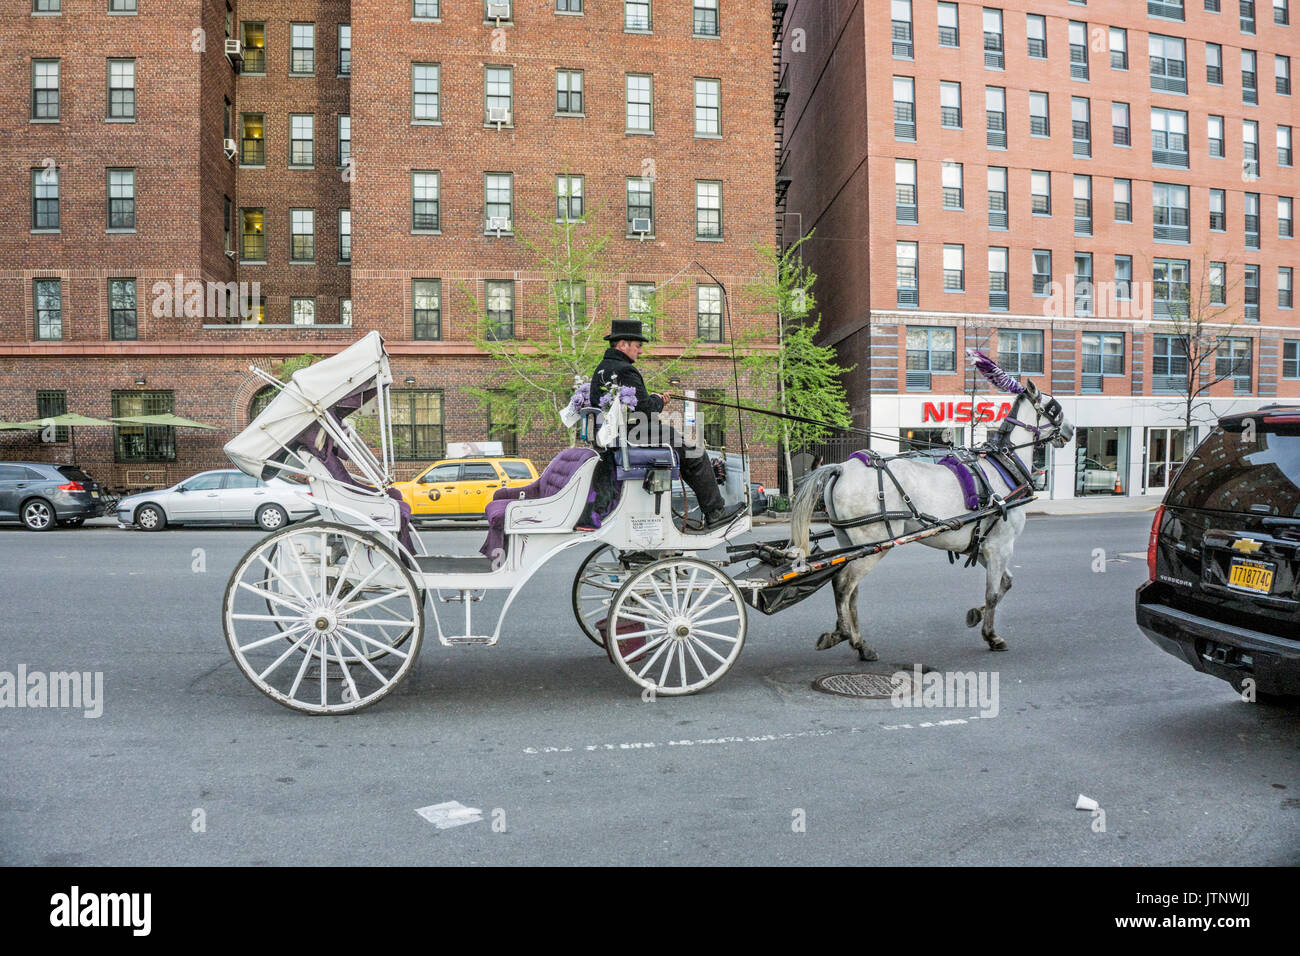 white Central Park hansom cab jaunty top-hatted driver plumed white horse returning to barn along Eleventh avenue to 52nd Street New York City USA - Stock Image